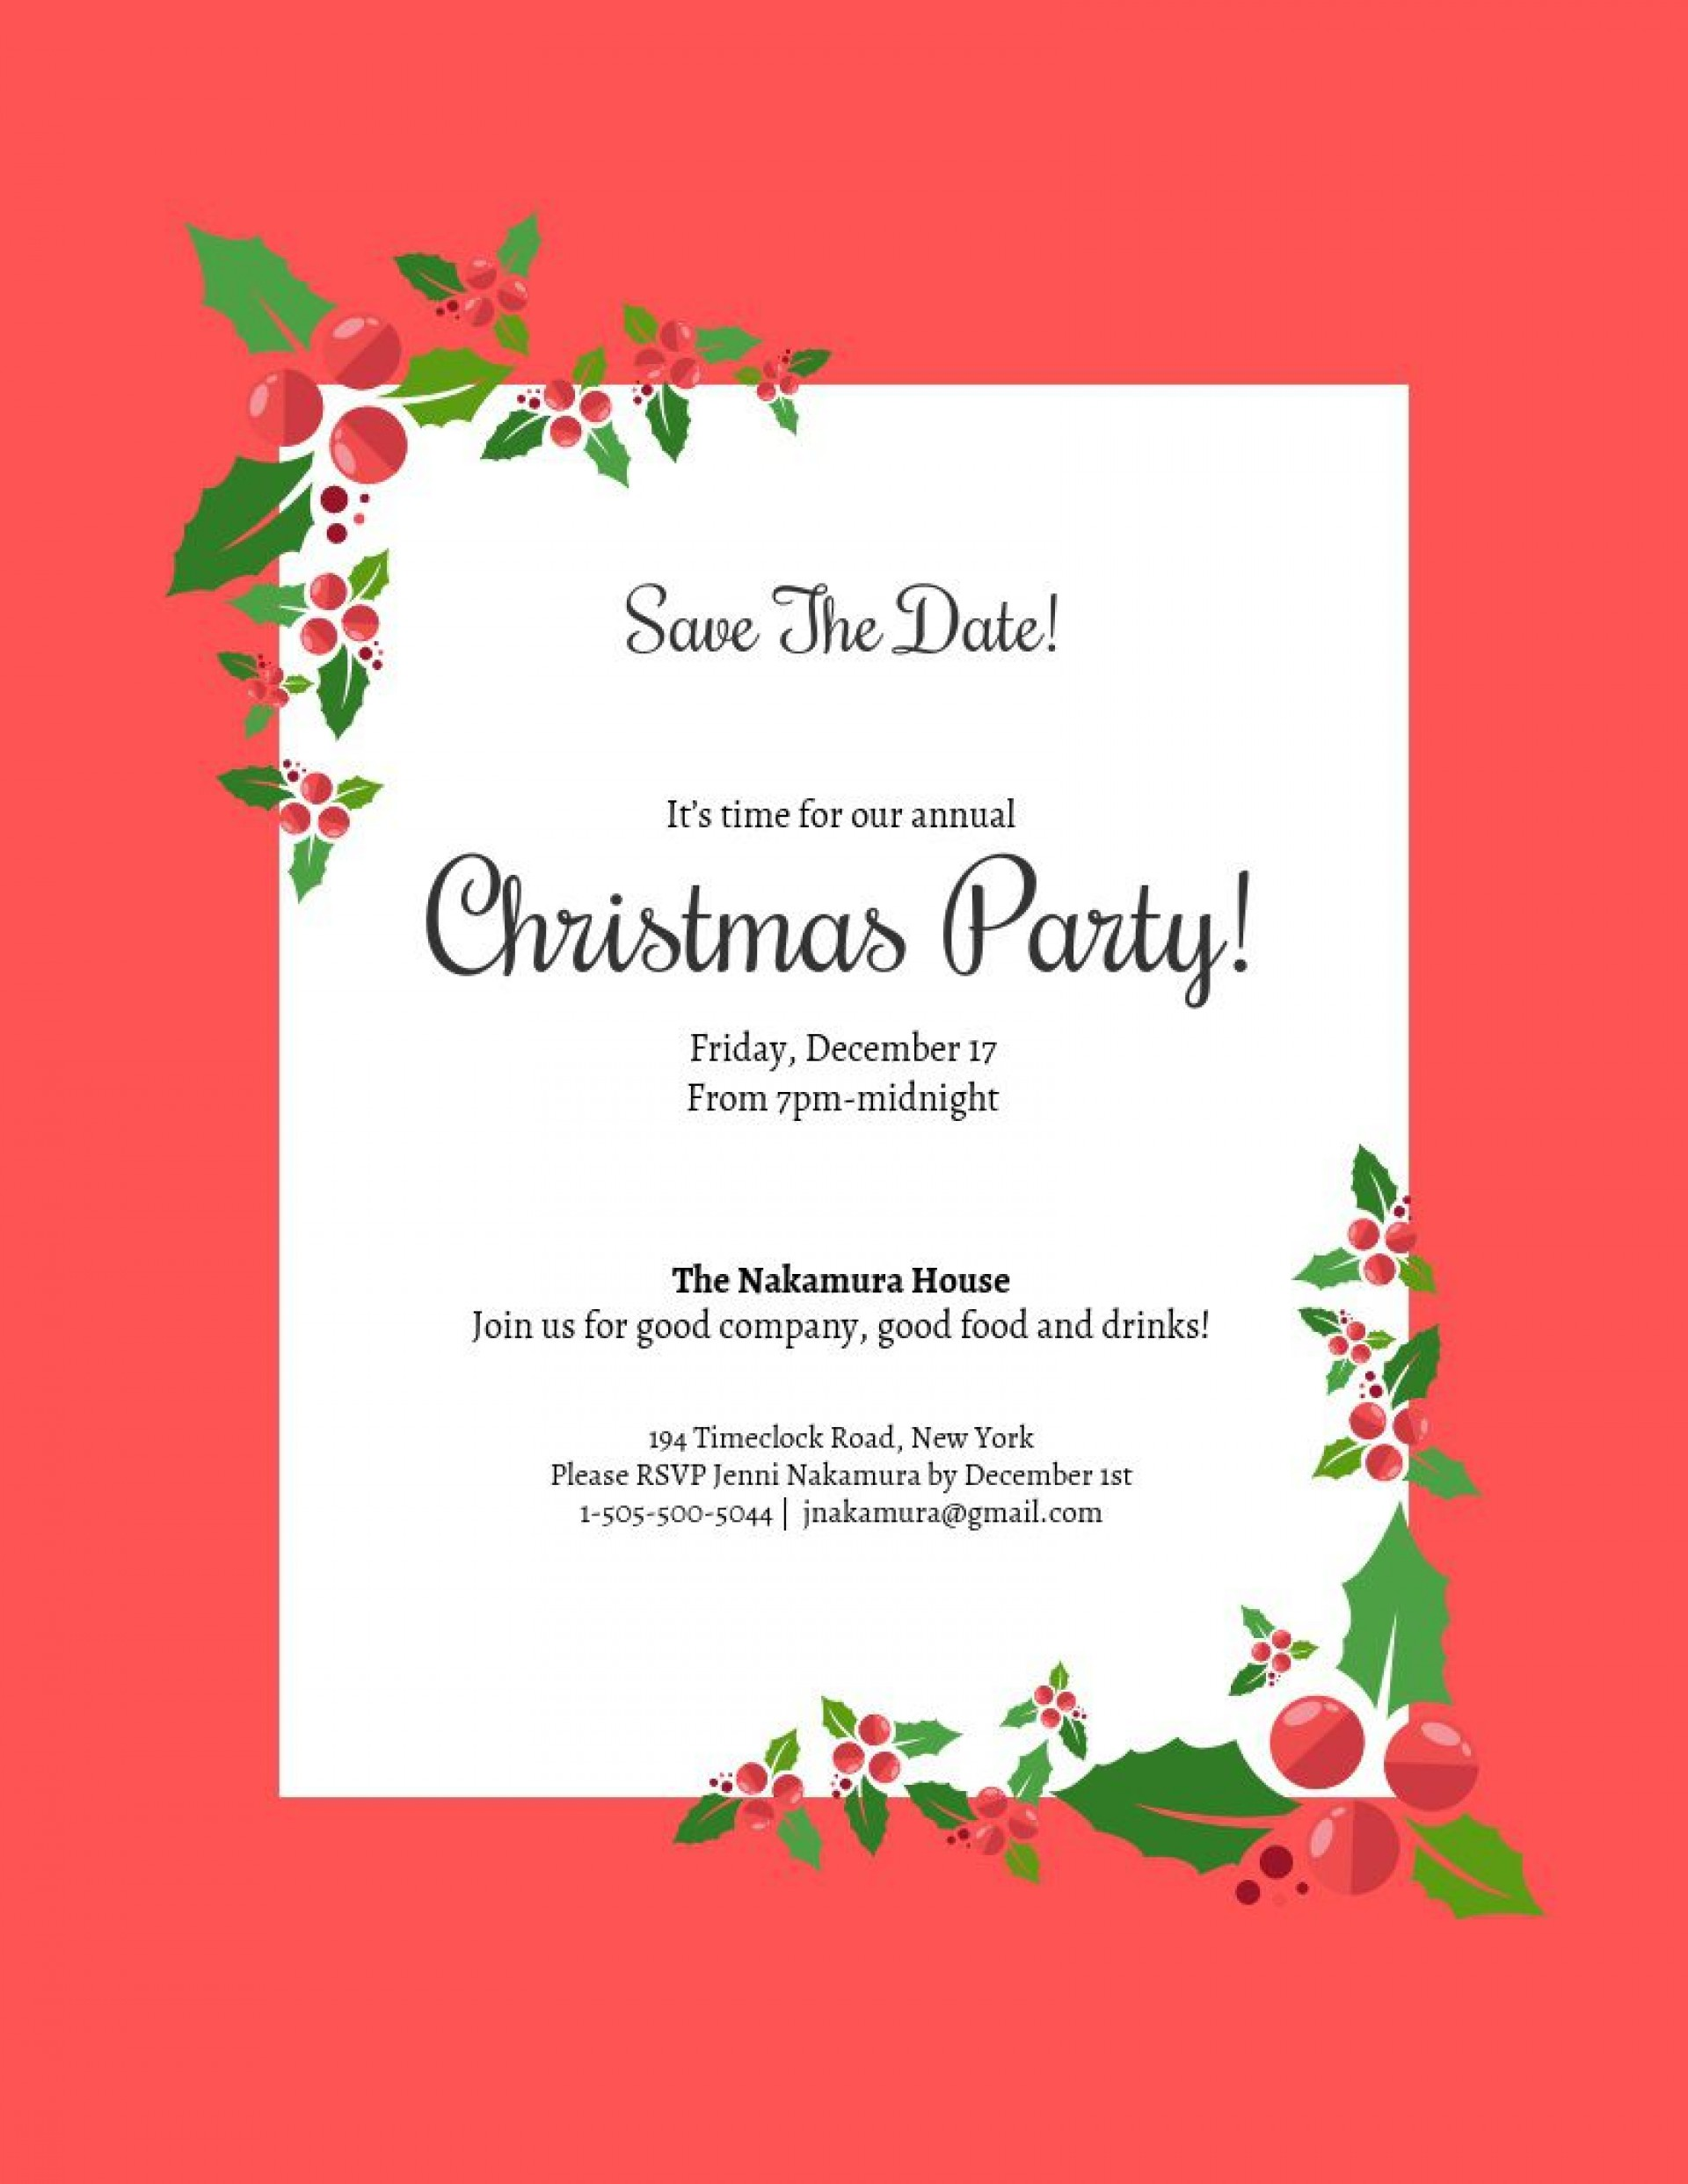 000 Frightening Christma Party Invitation Template Idea  Funny Free Download Word Card1920